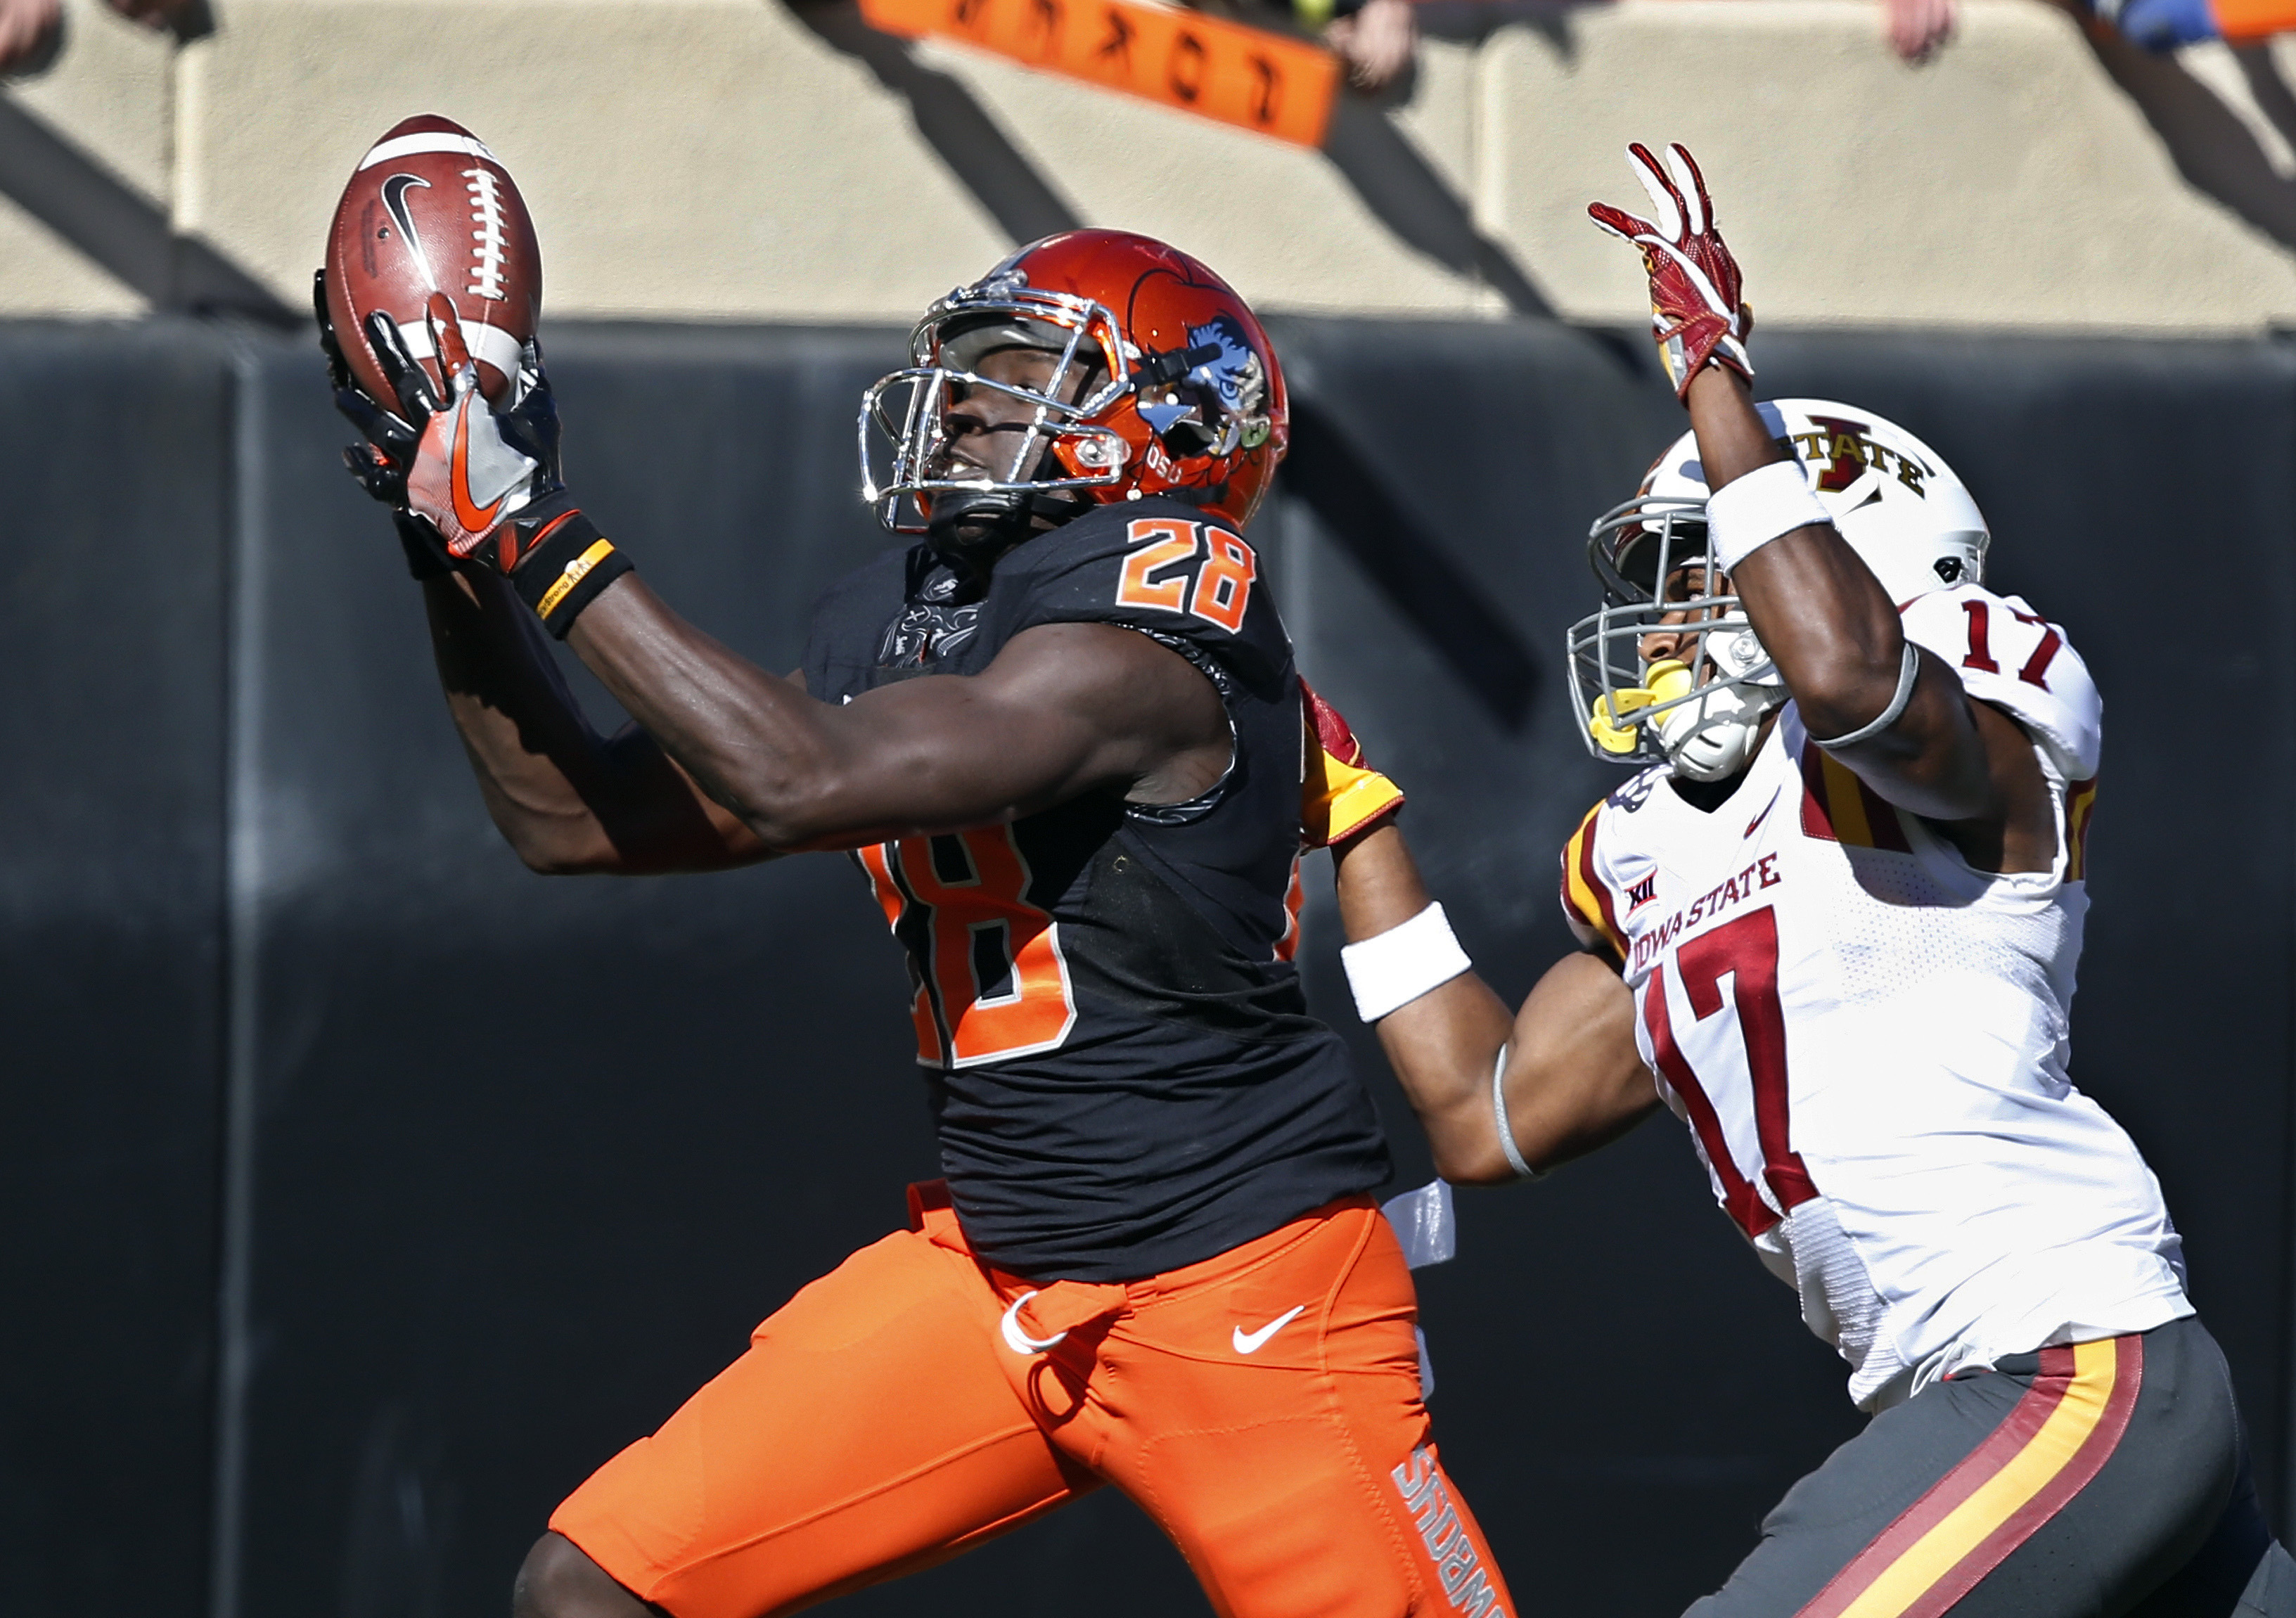 FILE - In this Oct. 8, 2016, file photo, Oklahoma State wide receiver James Washington (28) catches a pass in front of Iowa State defensive back Jomal Wiltz (17) in the second quarter of an NCAA college football game in Stillwater, Okla. For the second st